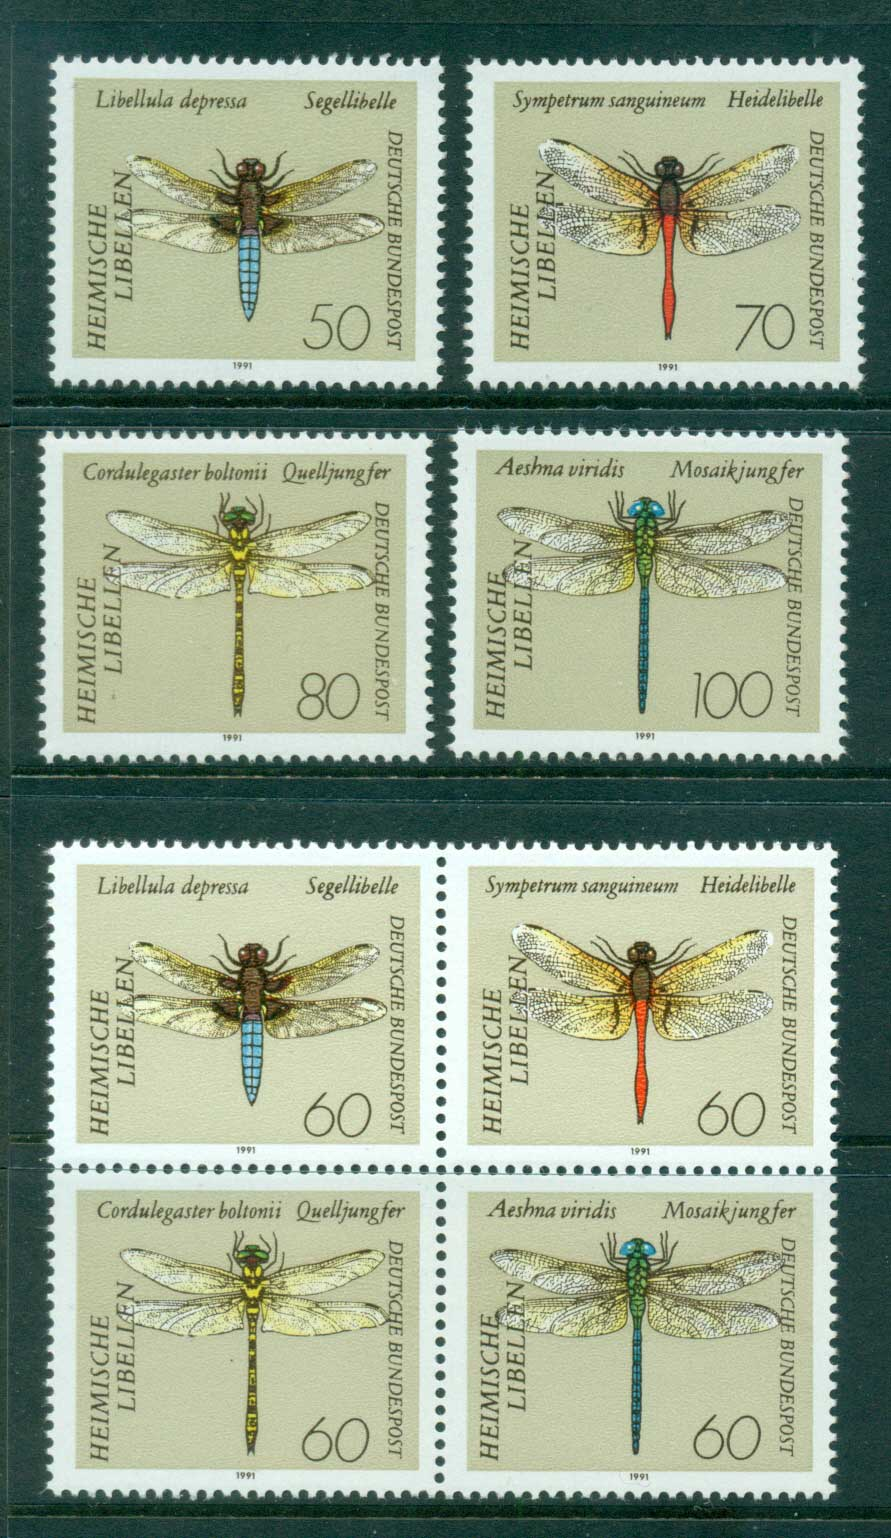 Germany 1991 Dragonflies MUH lot61029